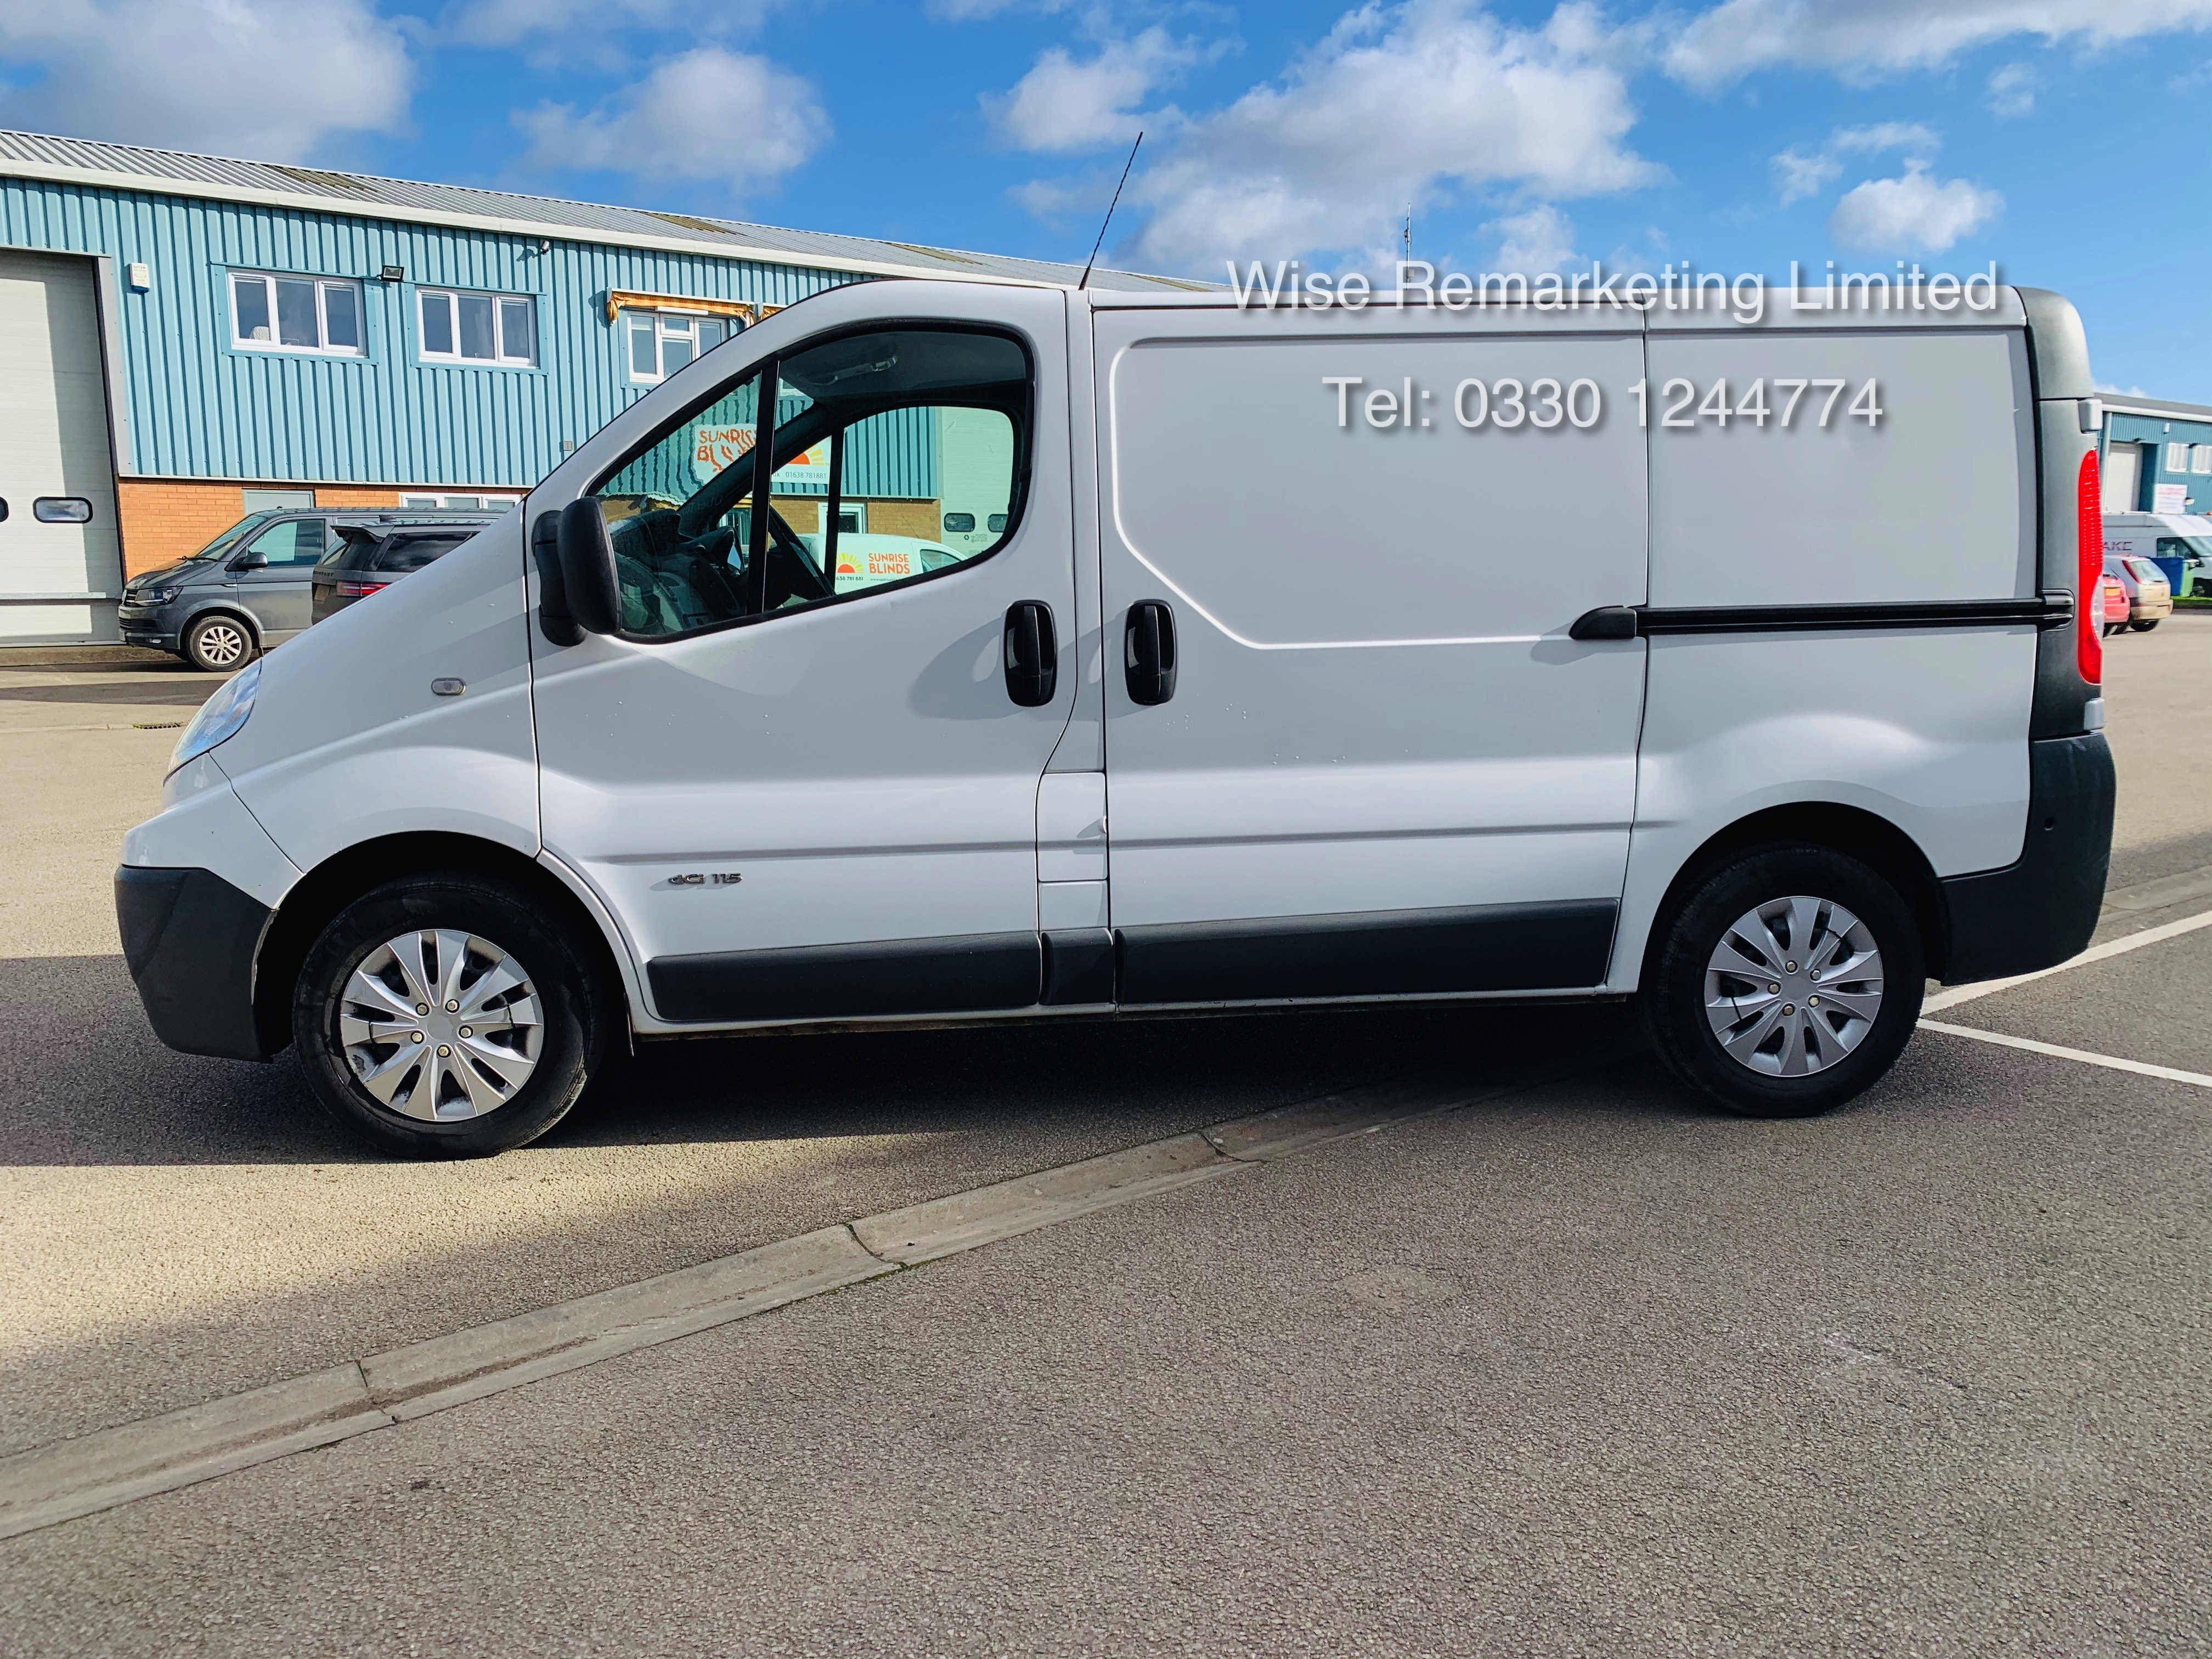 Renault Trafic 2.0 DCI (115 BHP) - 6 Speed - 2014 Reg - Ply Lined - - Image 4 of 21